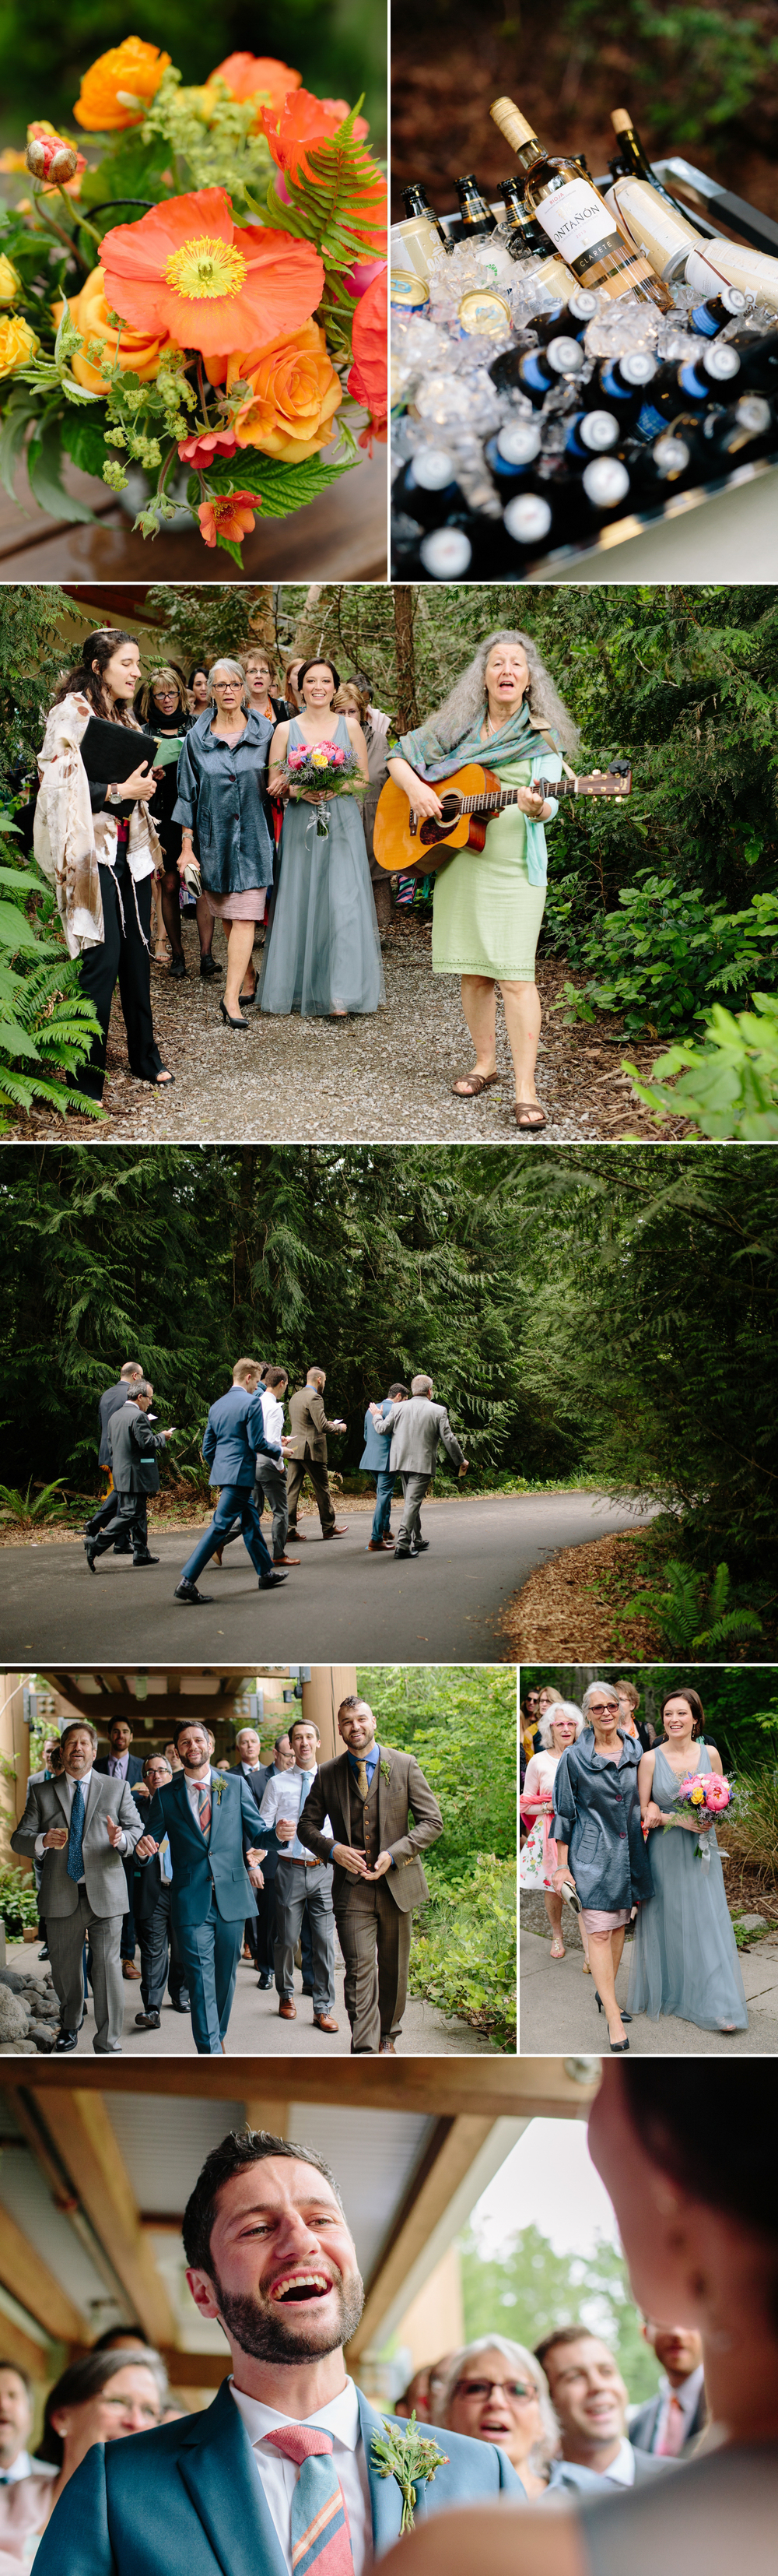 cameron-zegers-wedding-photographer-seattle-islandwood-bainbridge-island-4.jpg